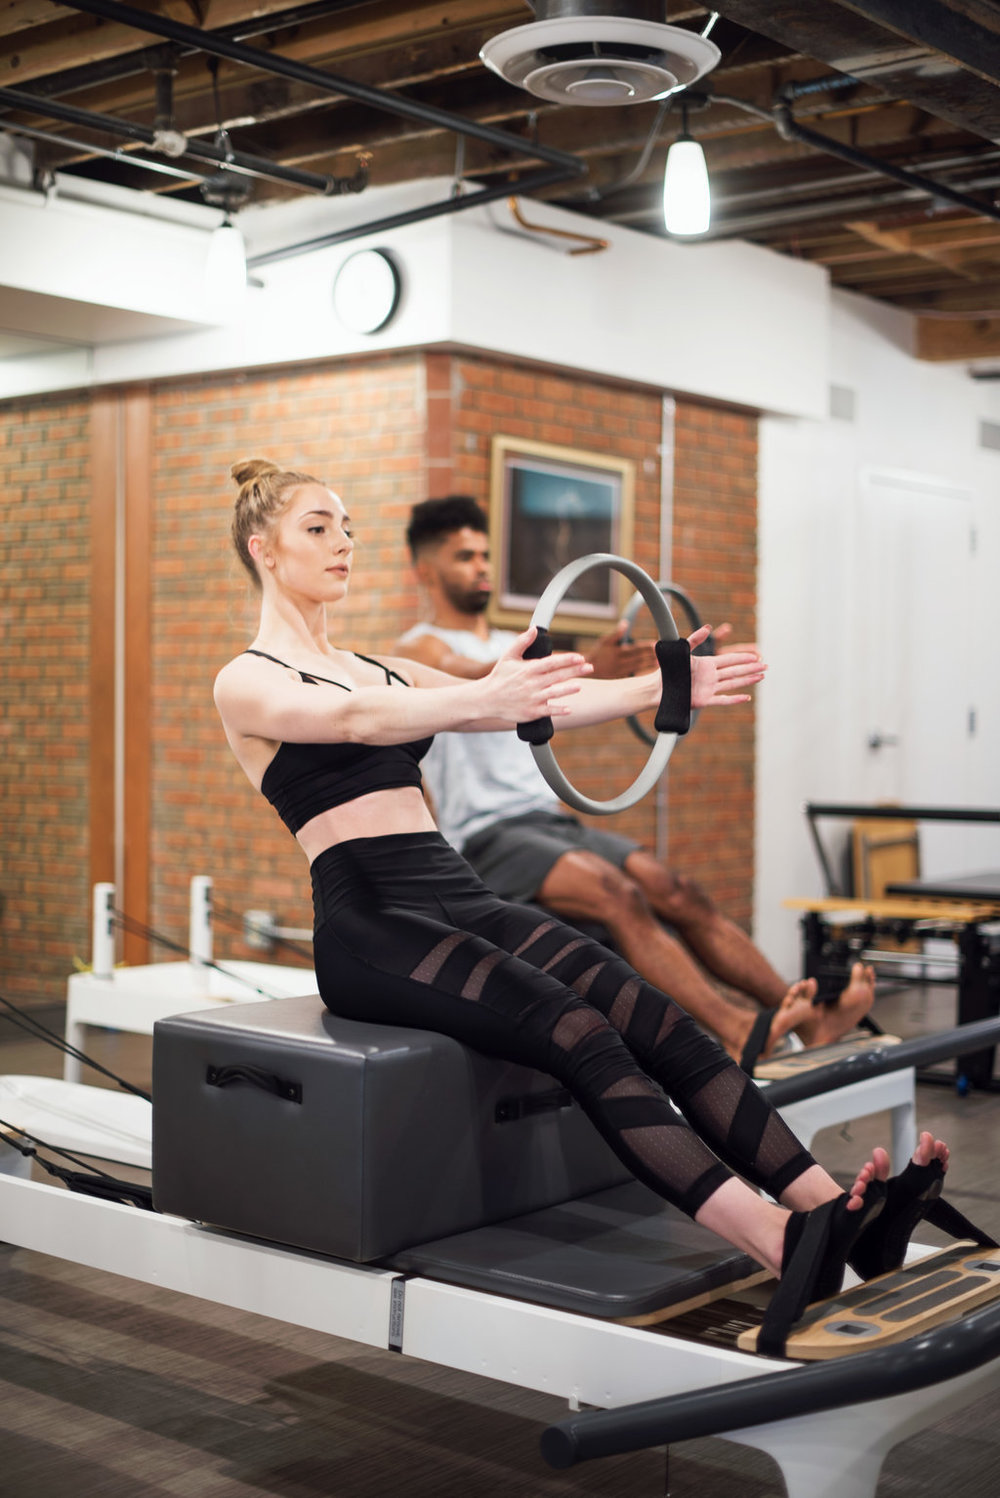 Fluid FusionTotal Body Reformer - Low Impact. High Intensity.The Fluid Fusion Form on the Reformer combines controlled, slow movements with continued tension and movement transitions to develop your strength, flexibility, balance and endurance throughout your workout and everyday life. Create a balanced body and strong core while guaranteeing your full range of motion on the sliding carriage. Choose from 45 minute express or 60 minute totally body reforming workouts. Get Personalized attention in our small group classes on Balanced Body Allegro II Reformers, for a workout like nothing you've experienced before.